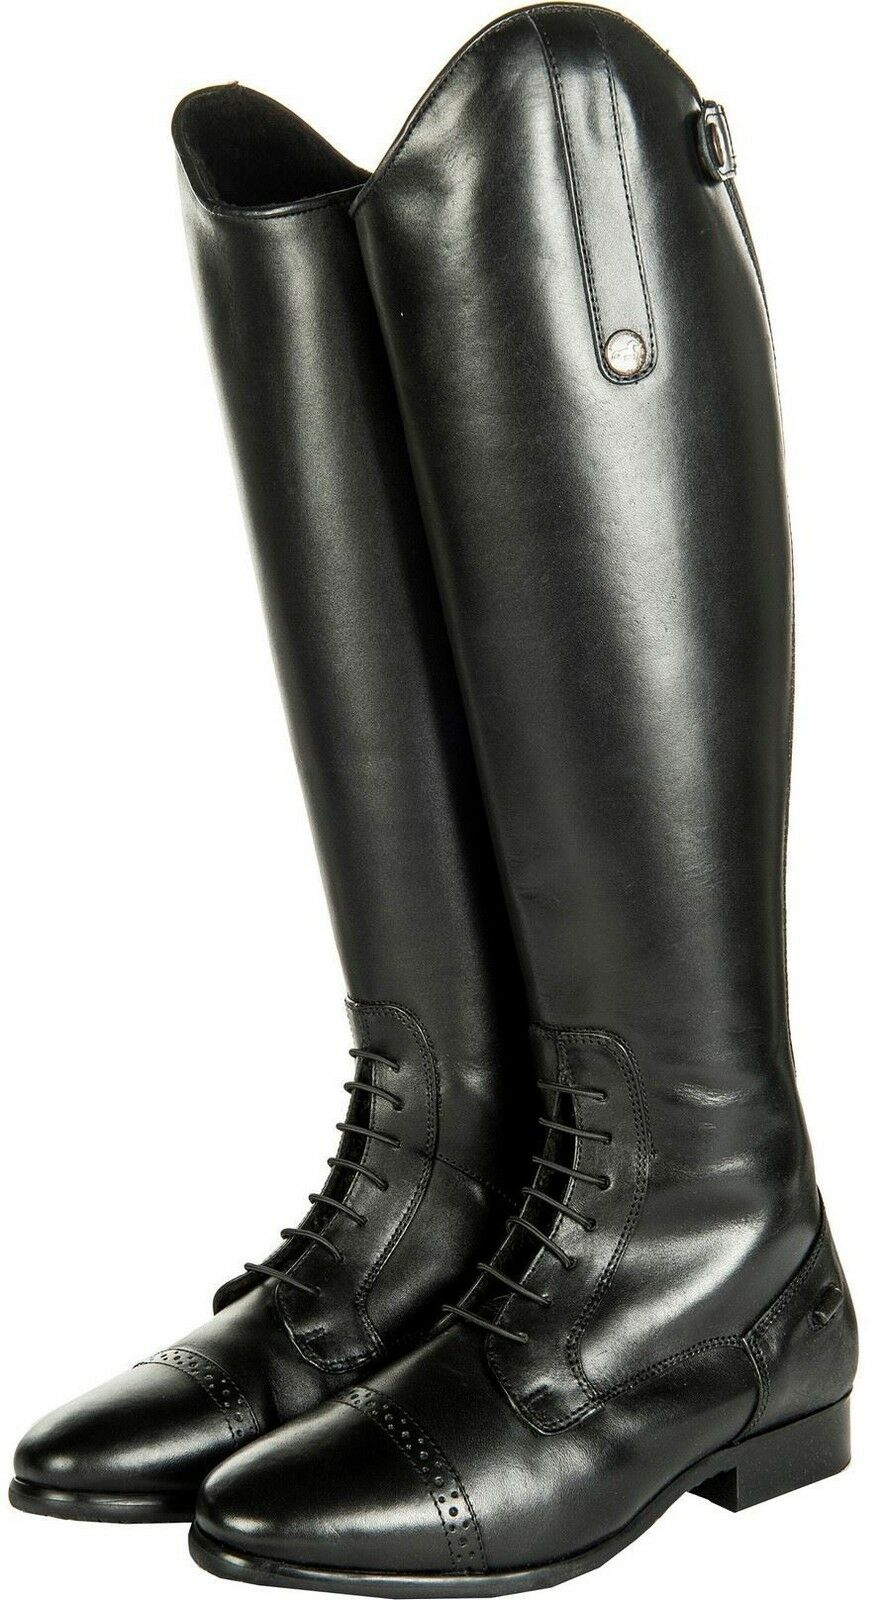 HKM Equestrian Ladies Mens Valencia Teddy Waterproof Standard Horse Riding Boots